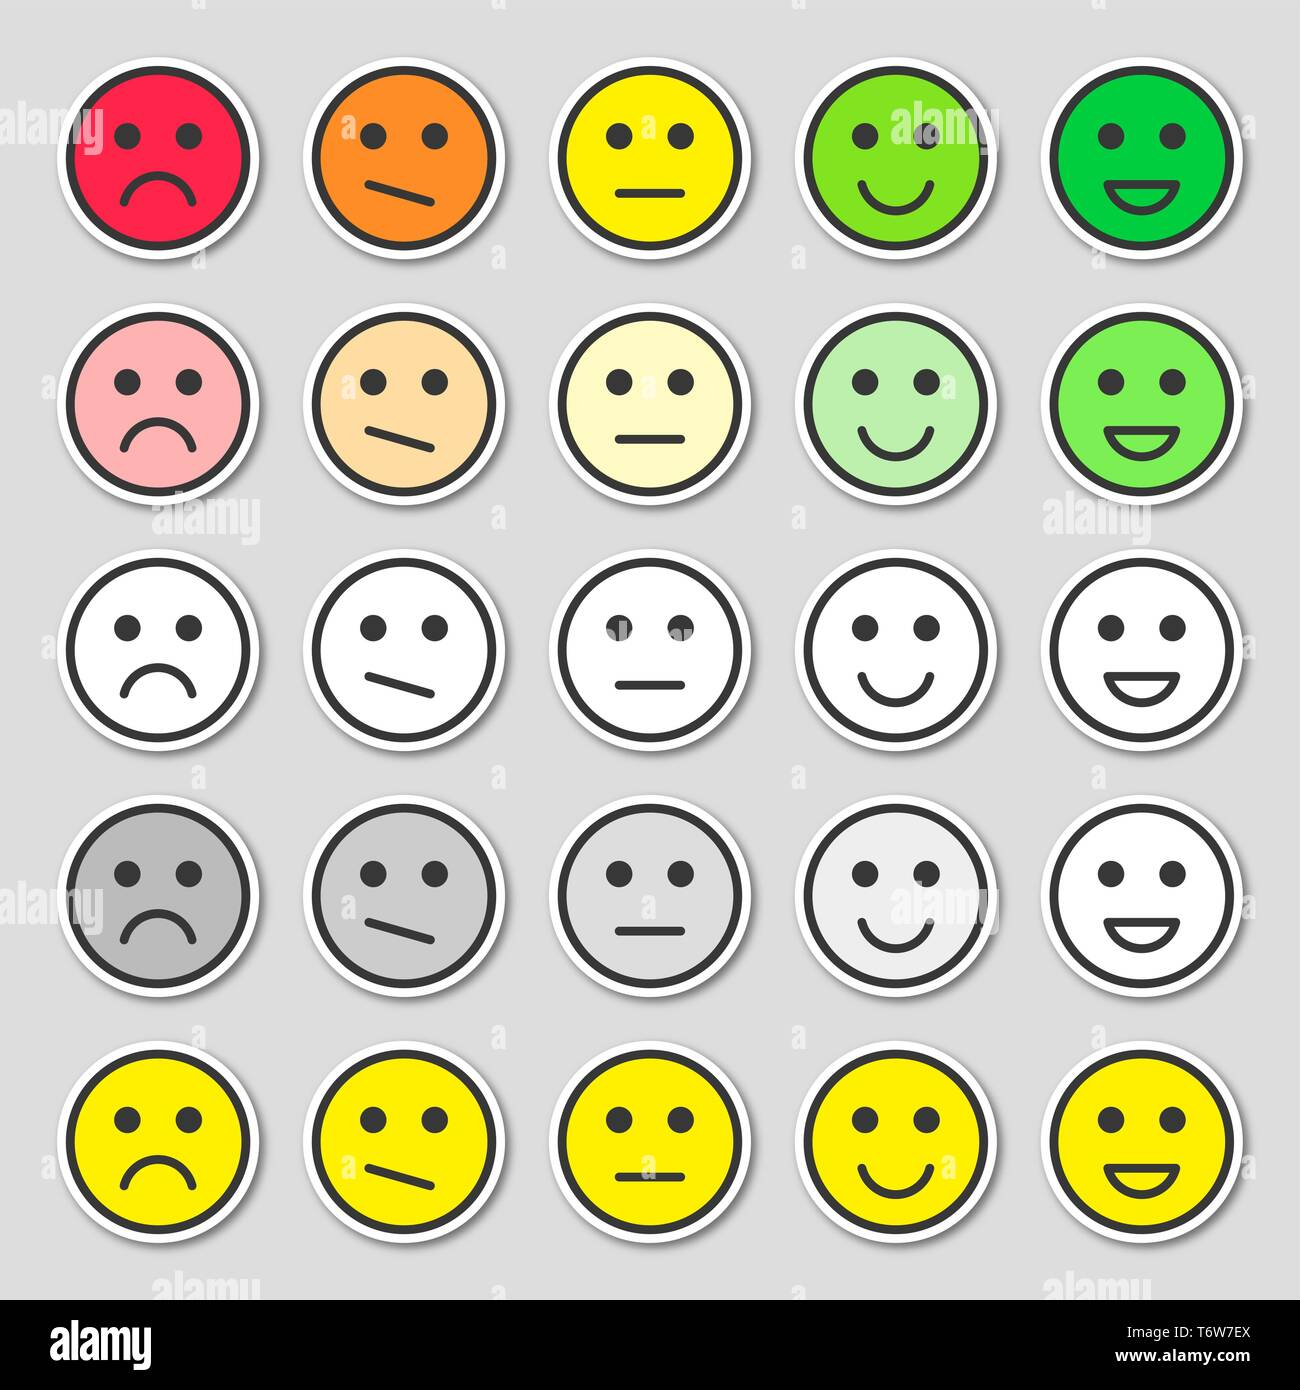 Feedback concept design, emotions scale rating. Simple and flat feedback stickers. - Stock Vector